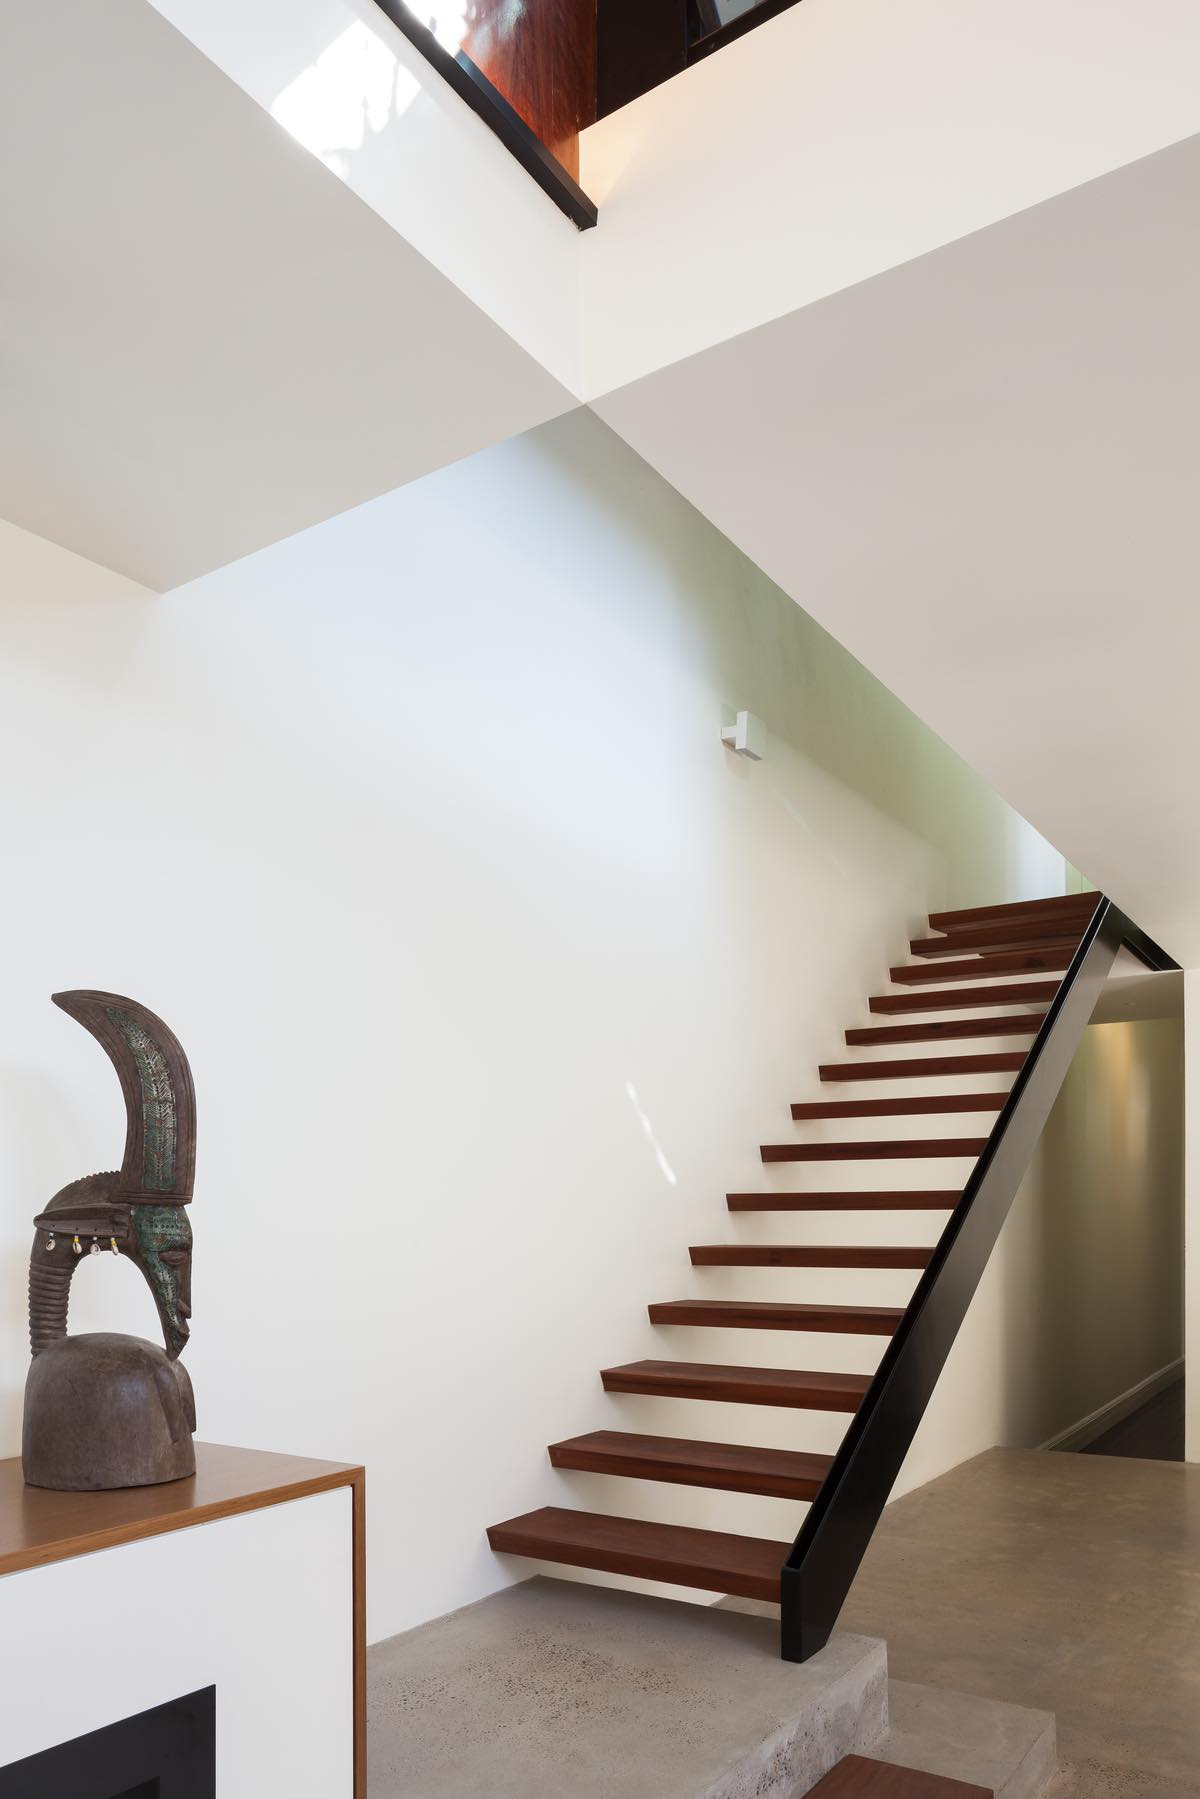 Wooden staircase to upstairs